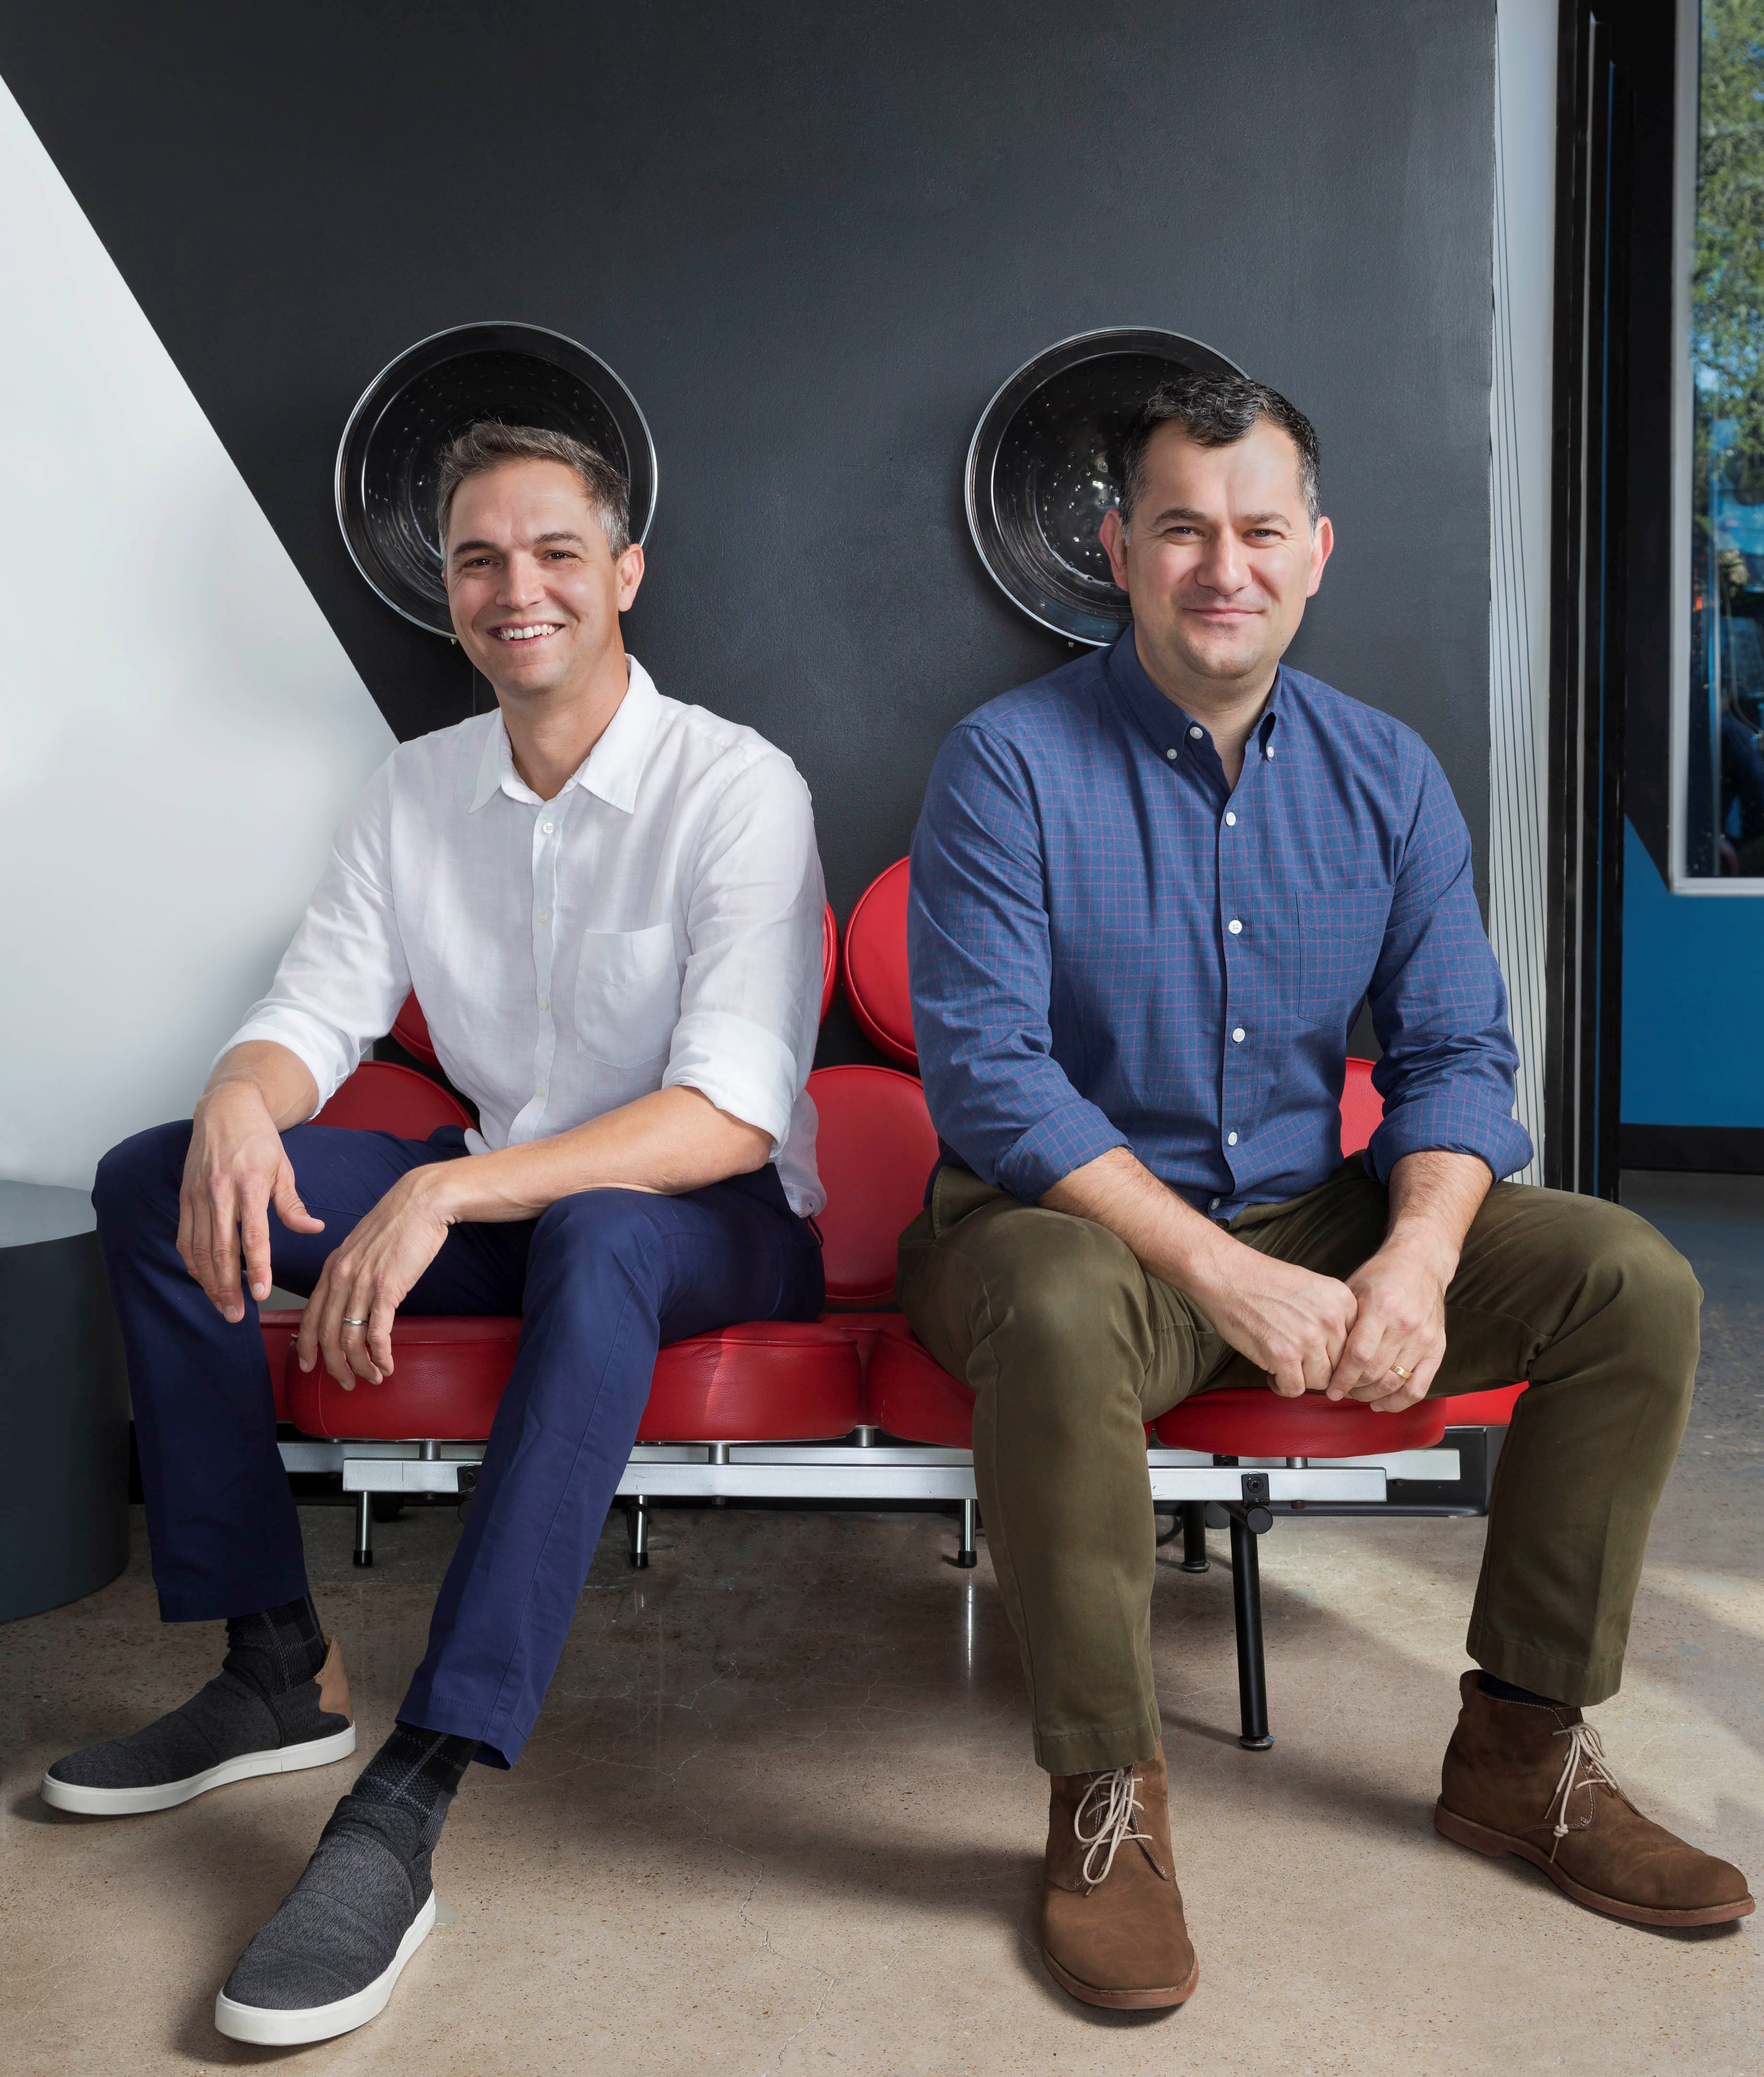 As a test pilot salon for Facebook's Workplace program,Birds Barbershops' Michael Portman and Jayson Rapaport are discovering a valuable new tool for communicating with team members across nine locations.